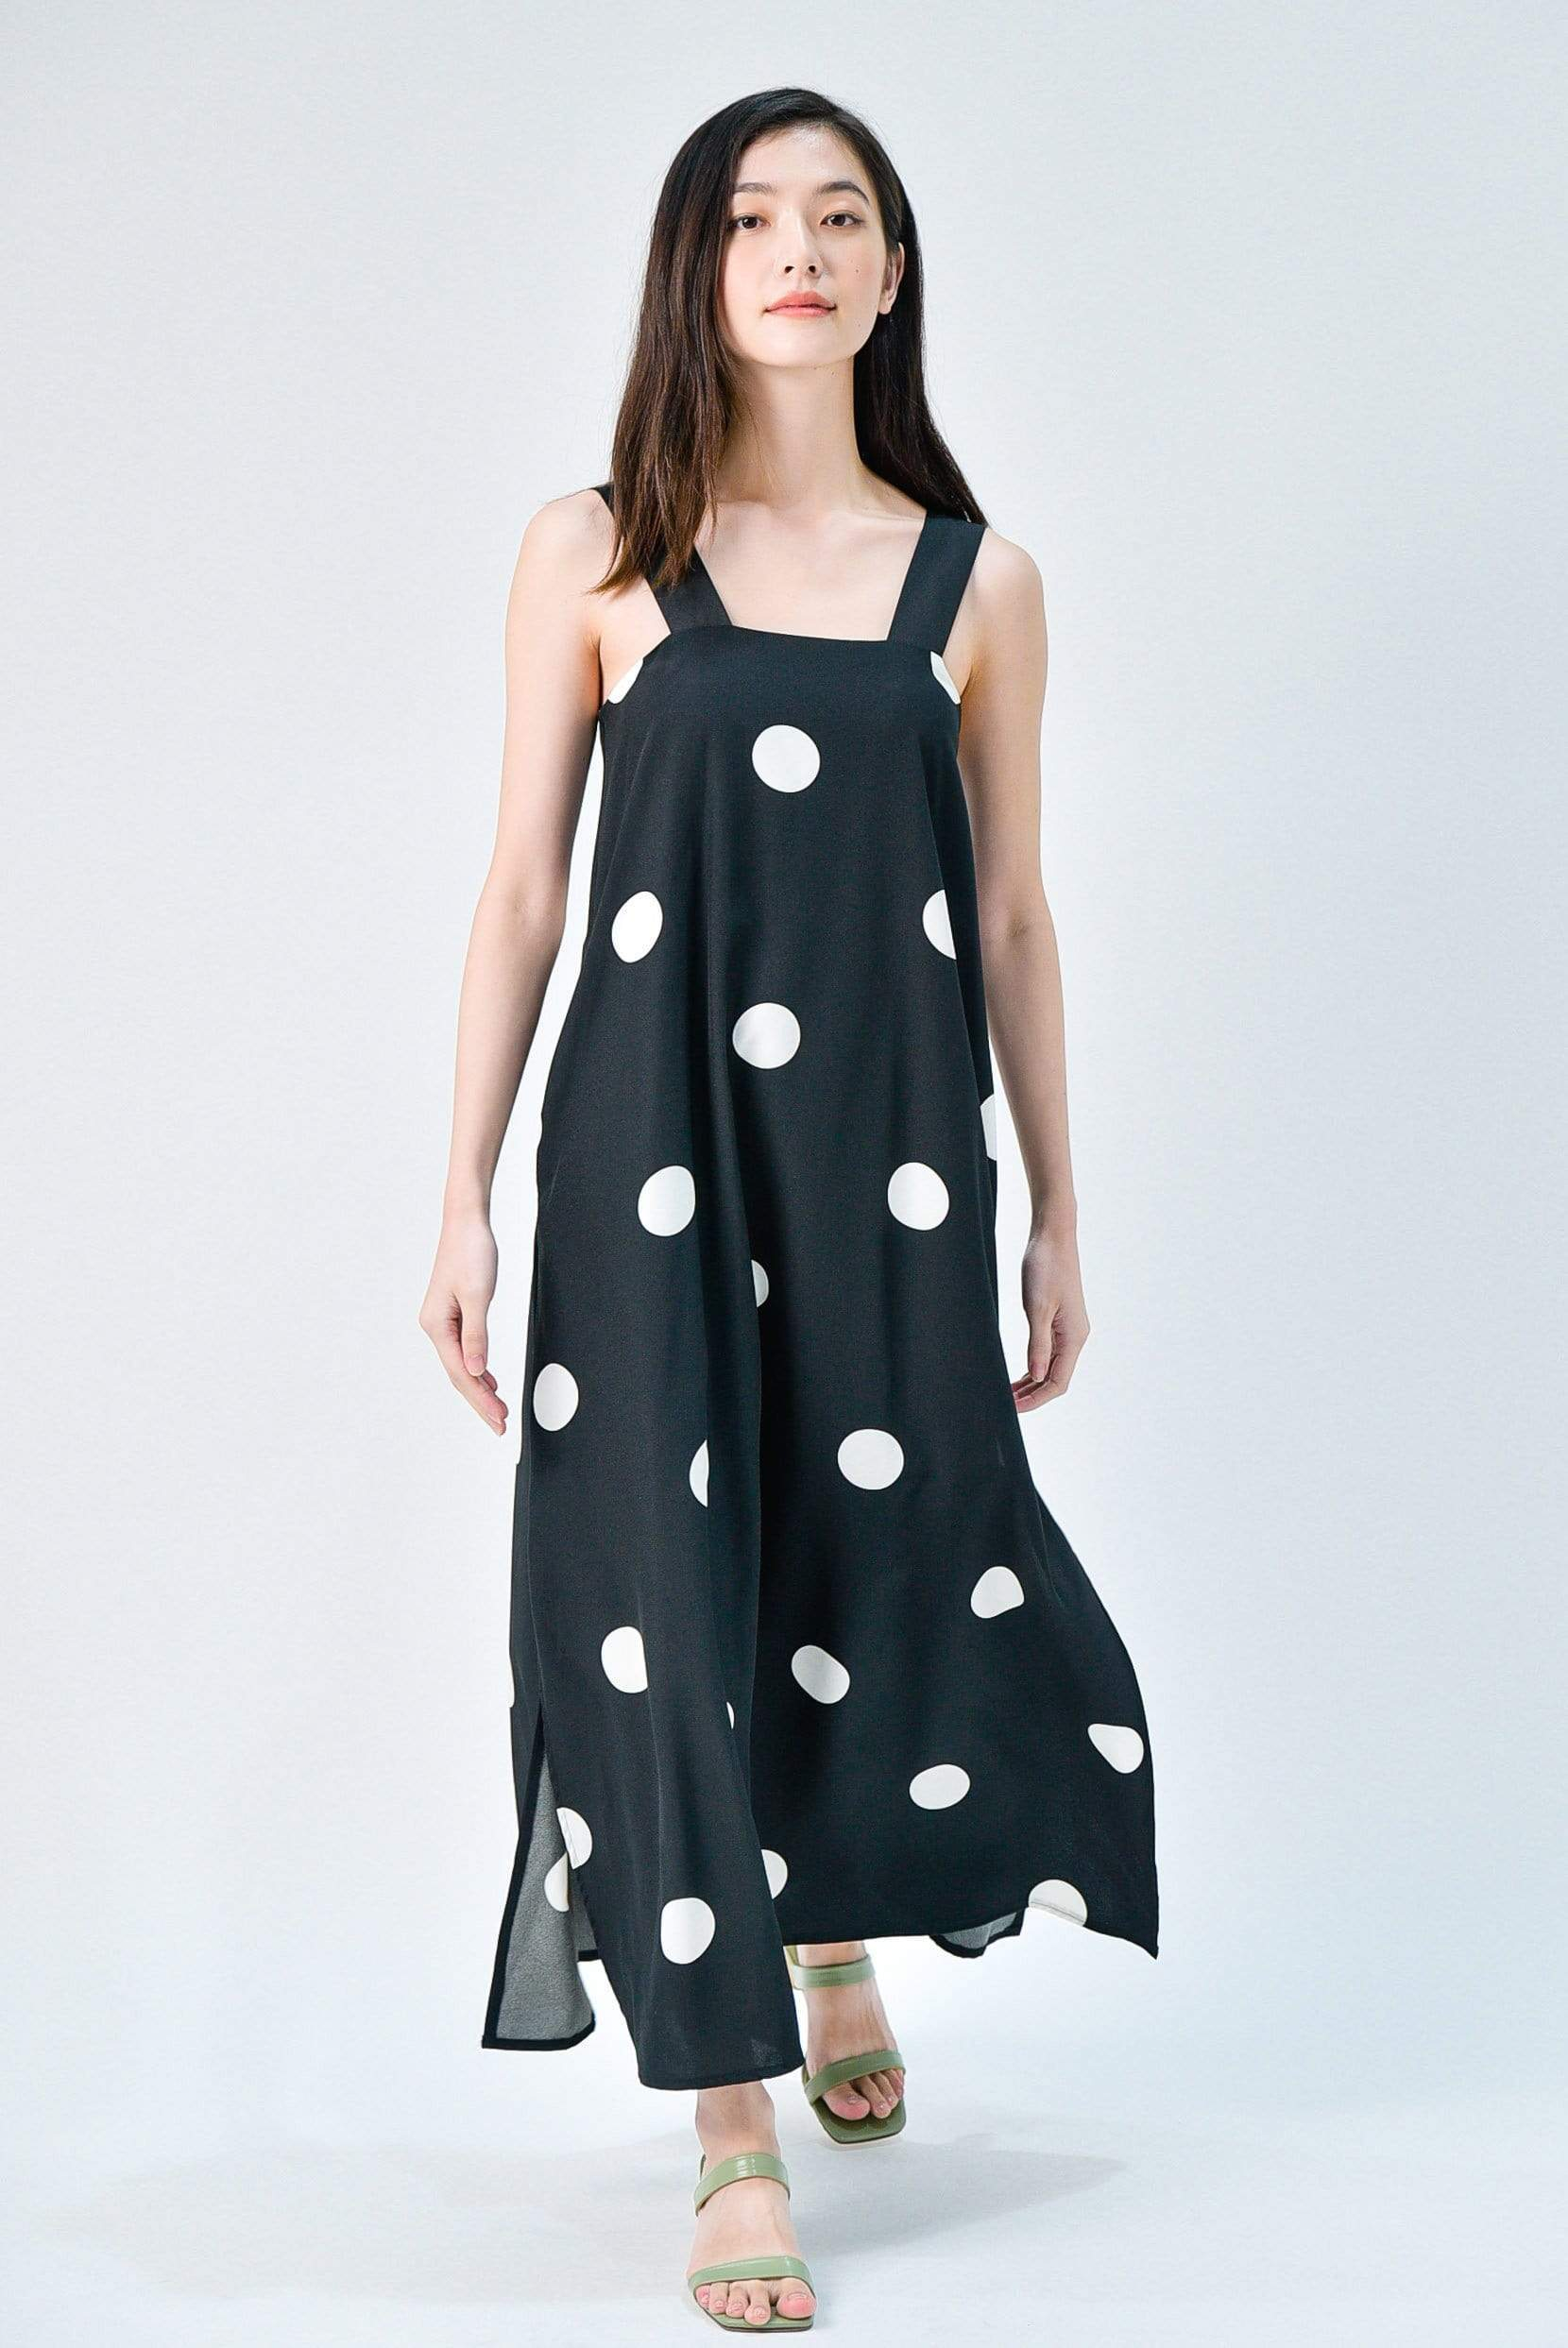 JILLIAN BLACK POLKA THICK STRAP MIDAXI DRESS